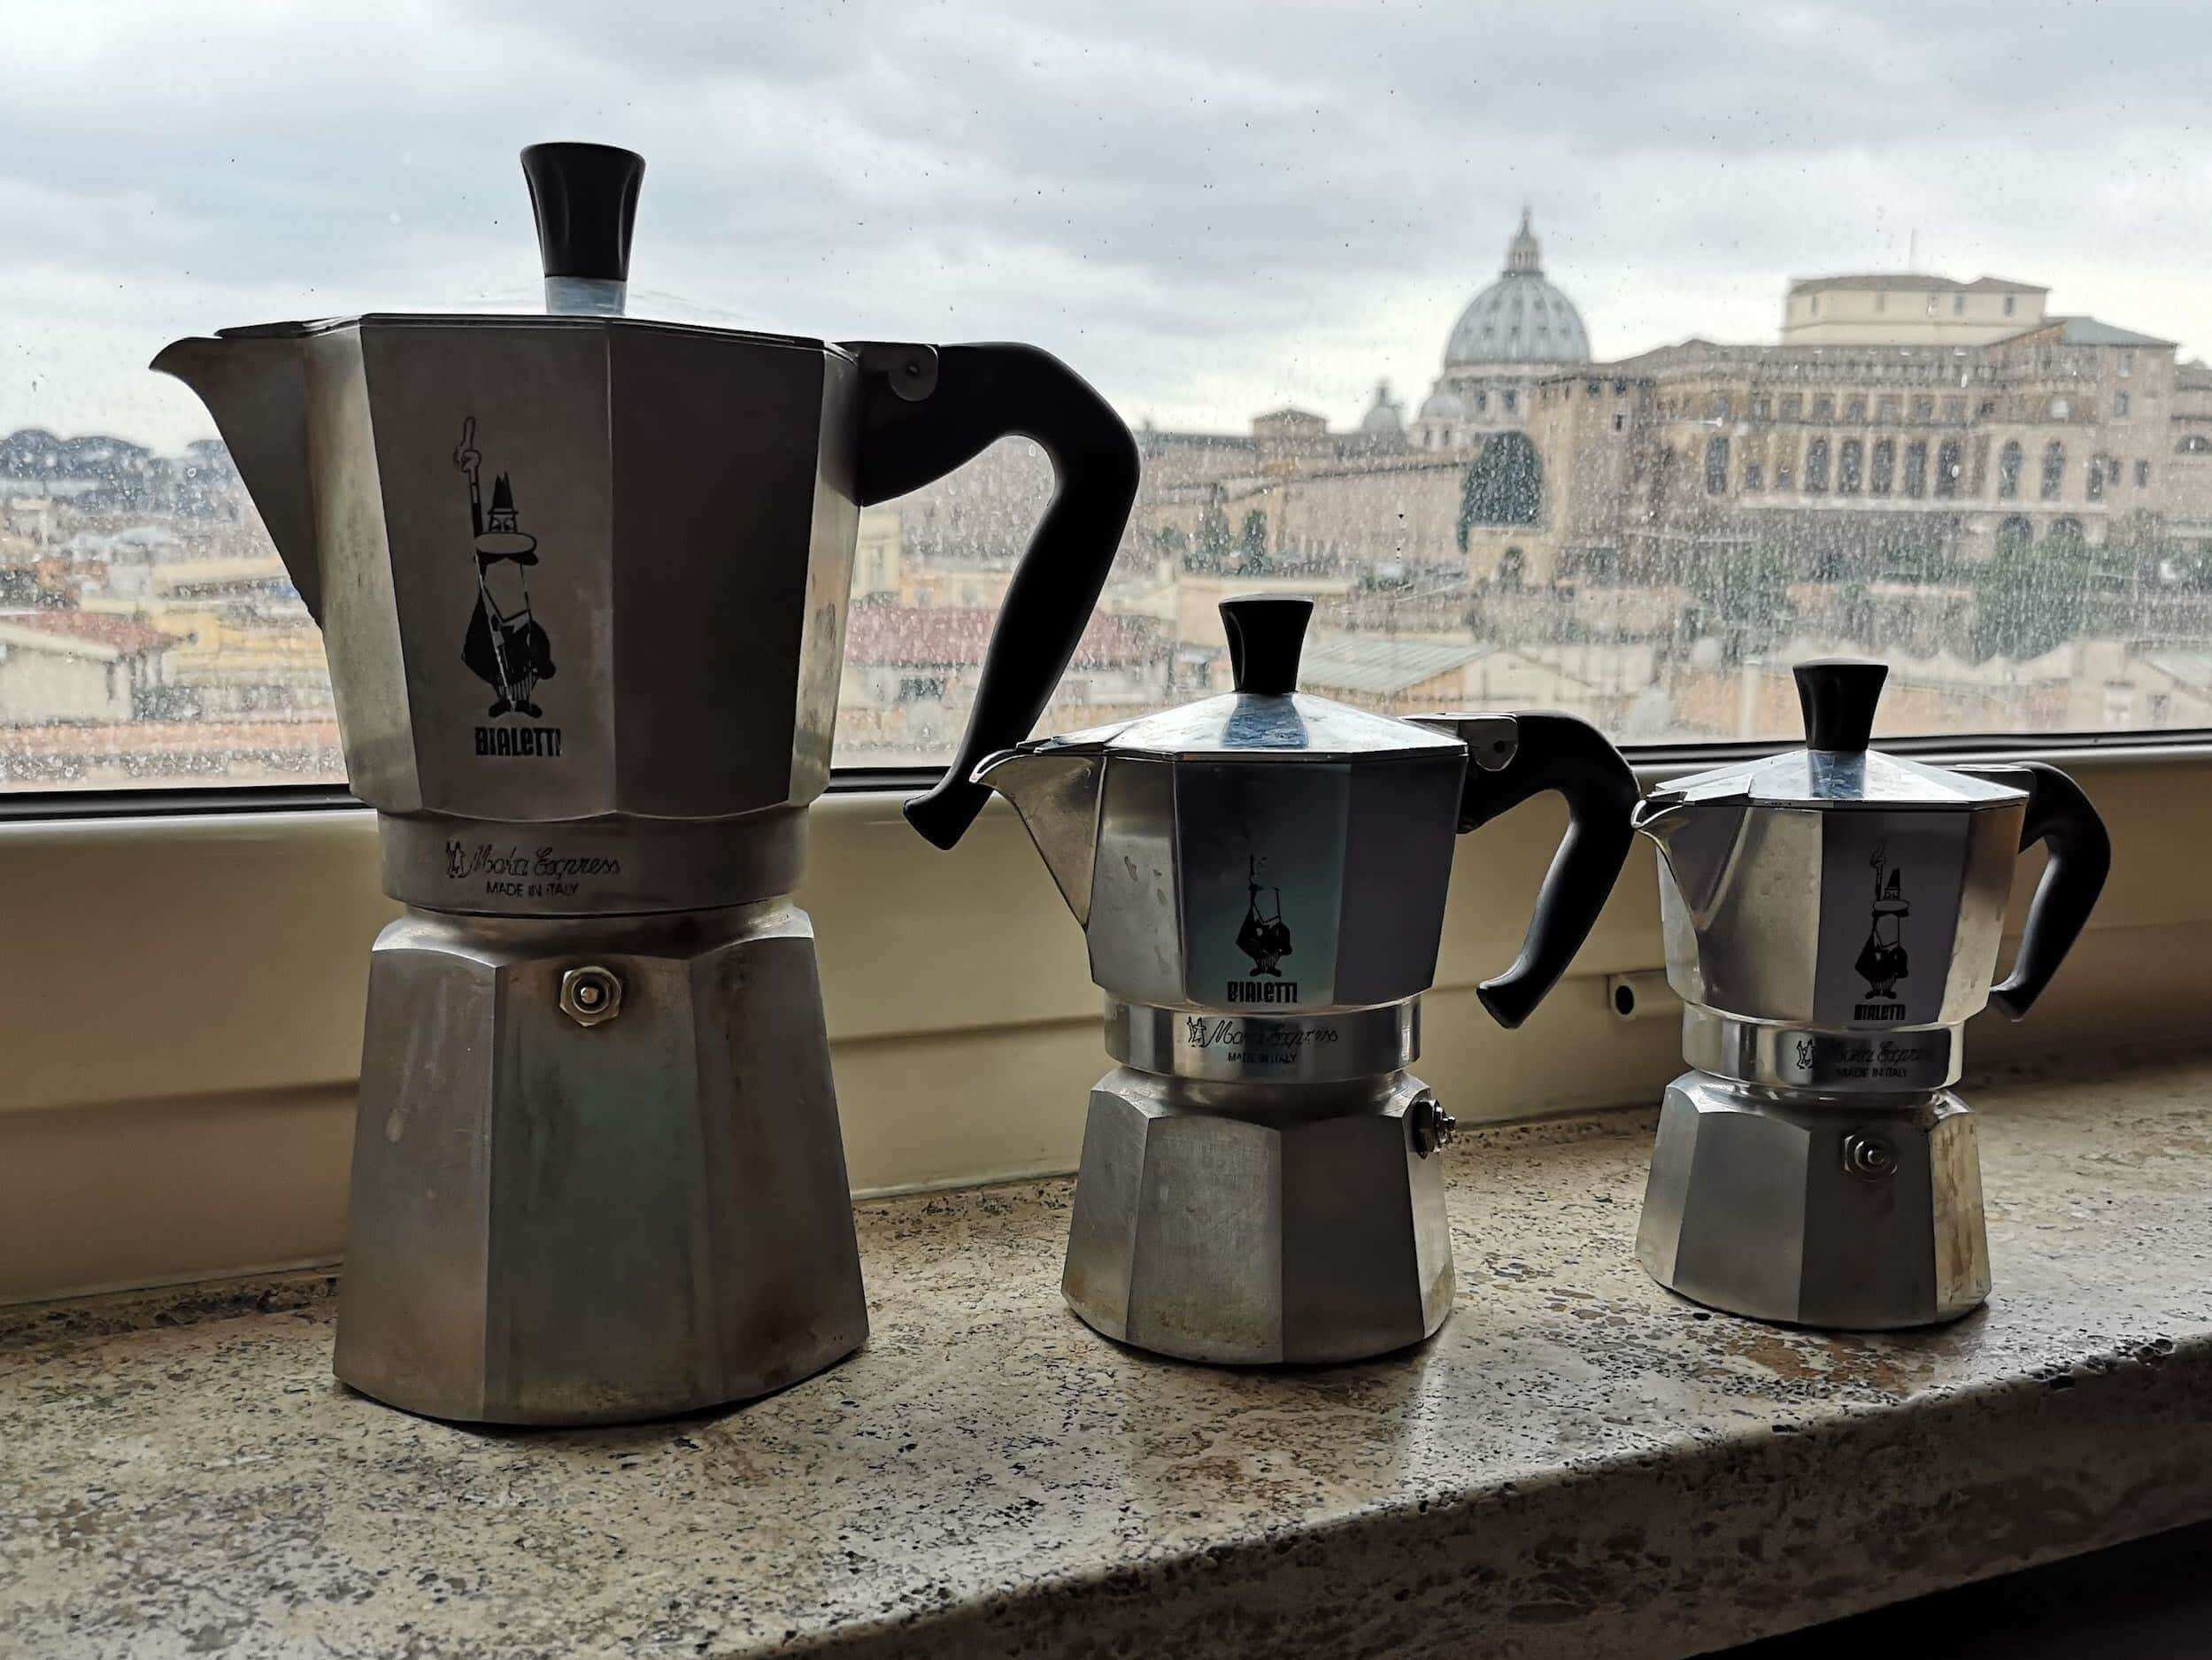 3 different sizes of the Bialetti moka coffe machine